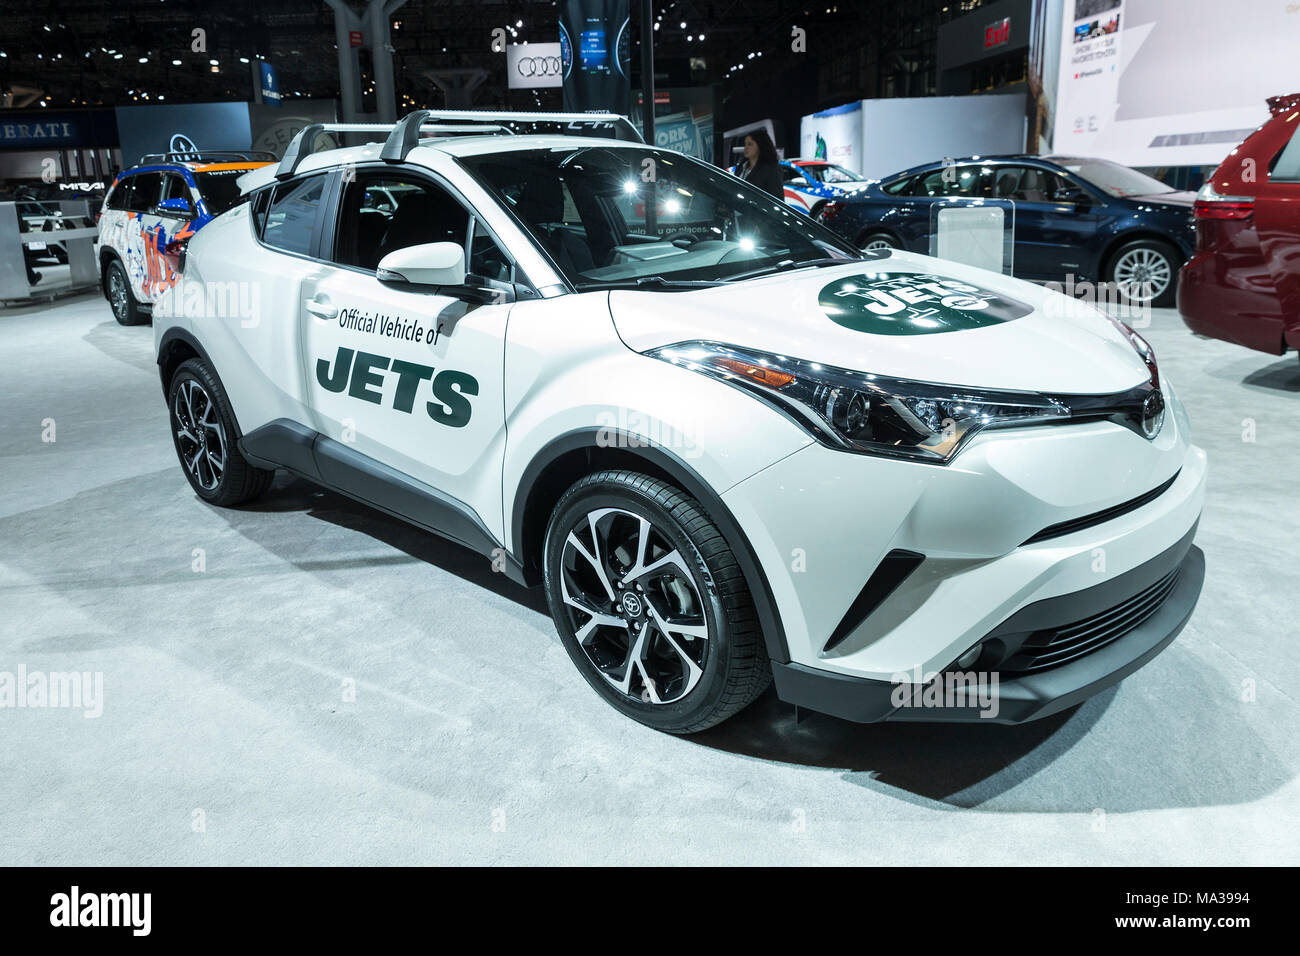 new york, united states. 28th mar, 2018. toyota sponsored car for